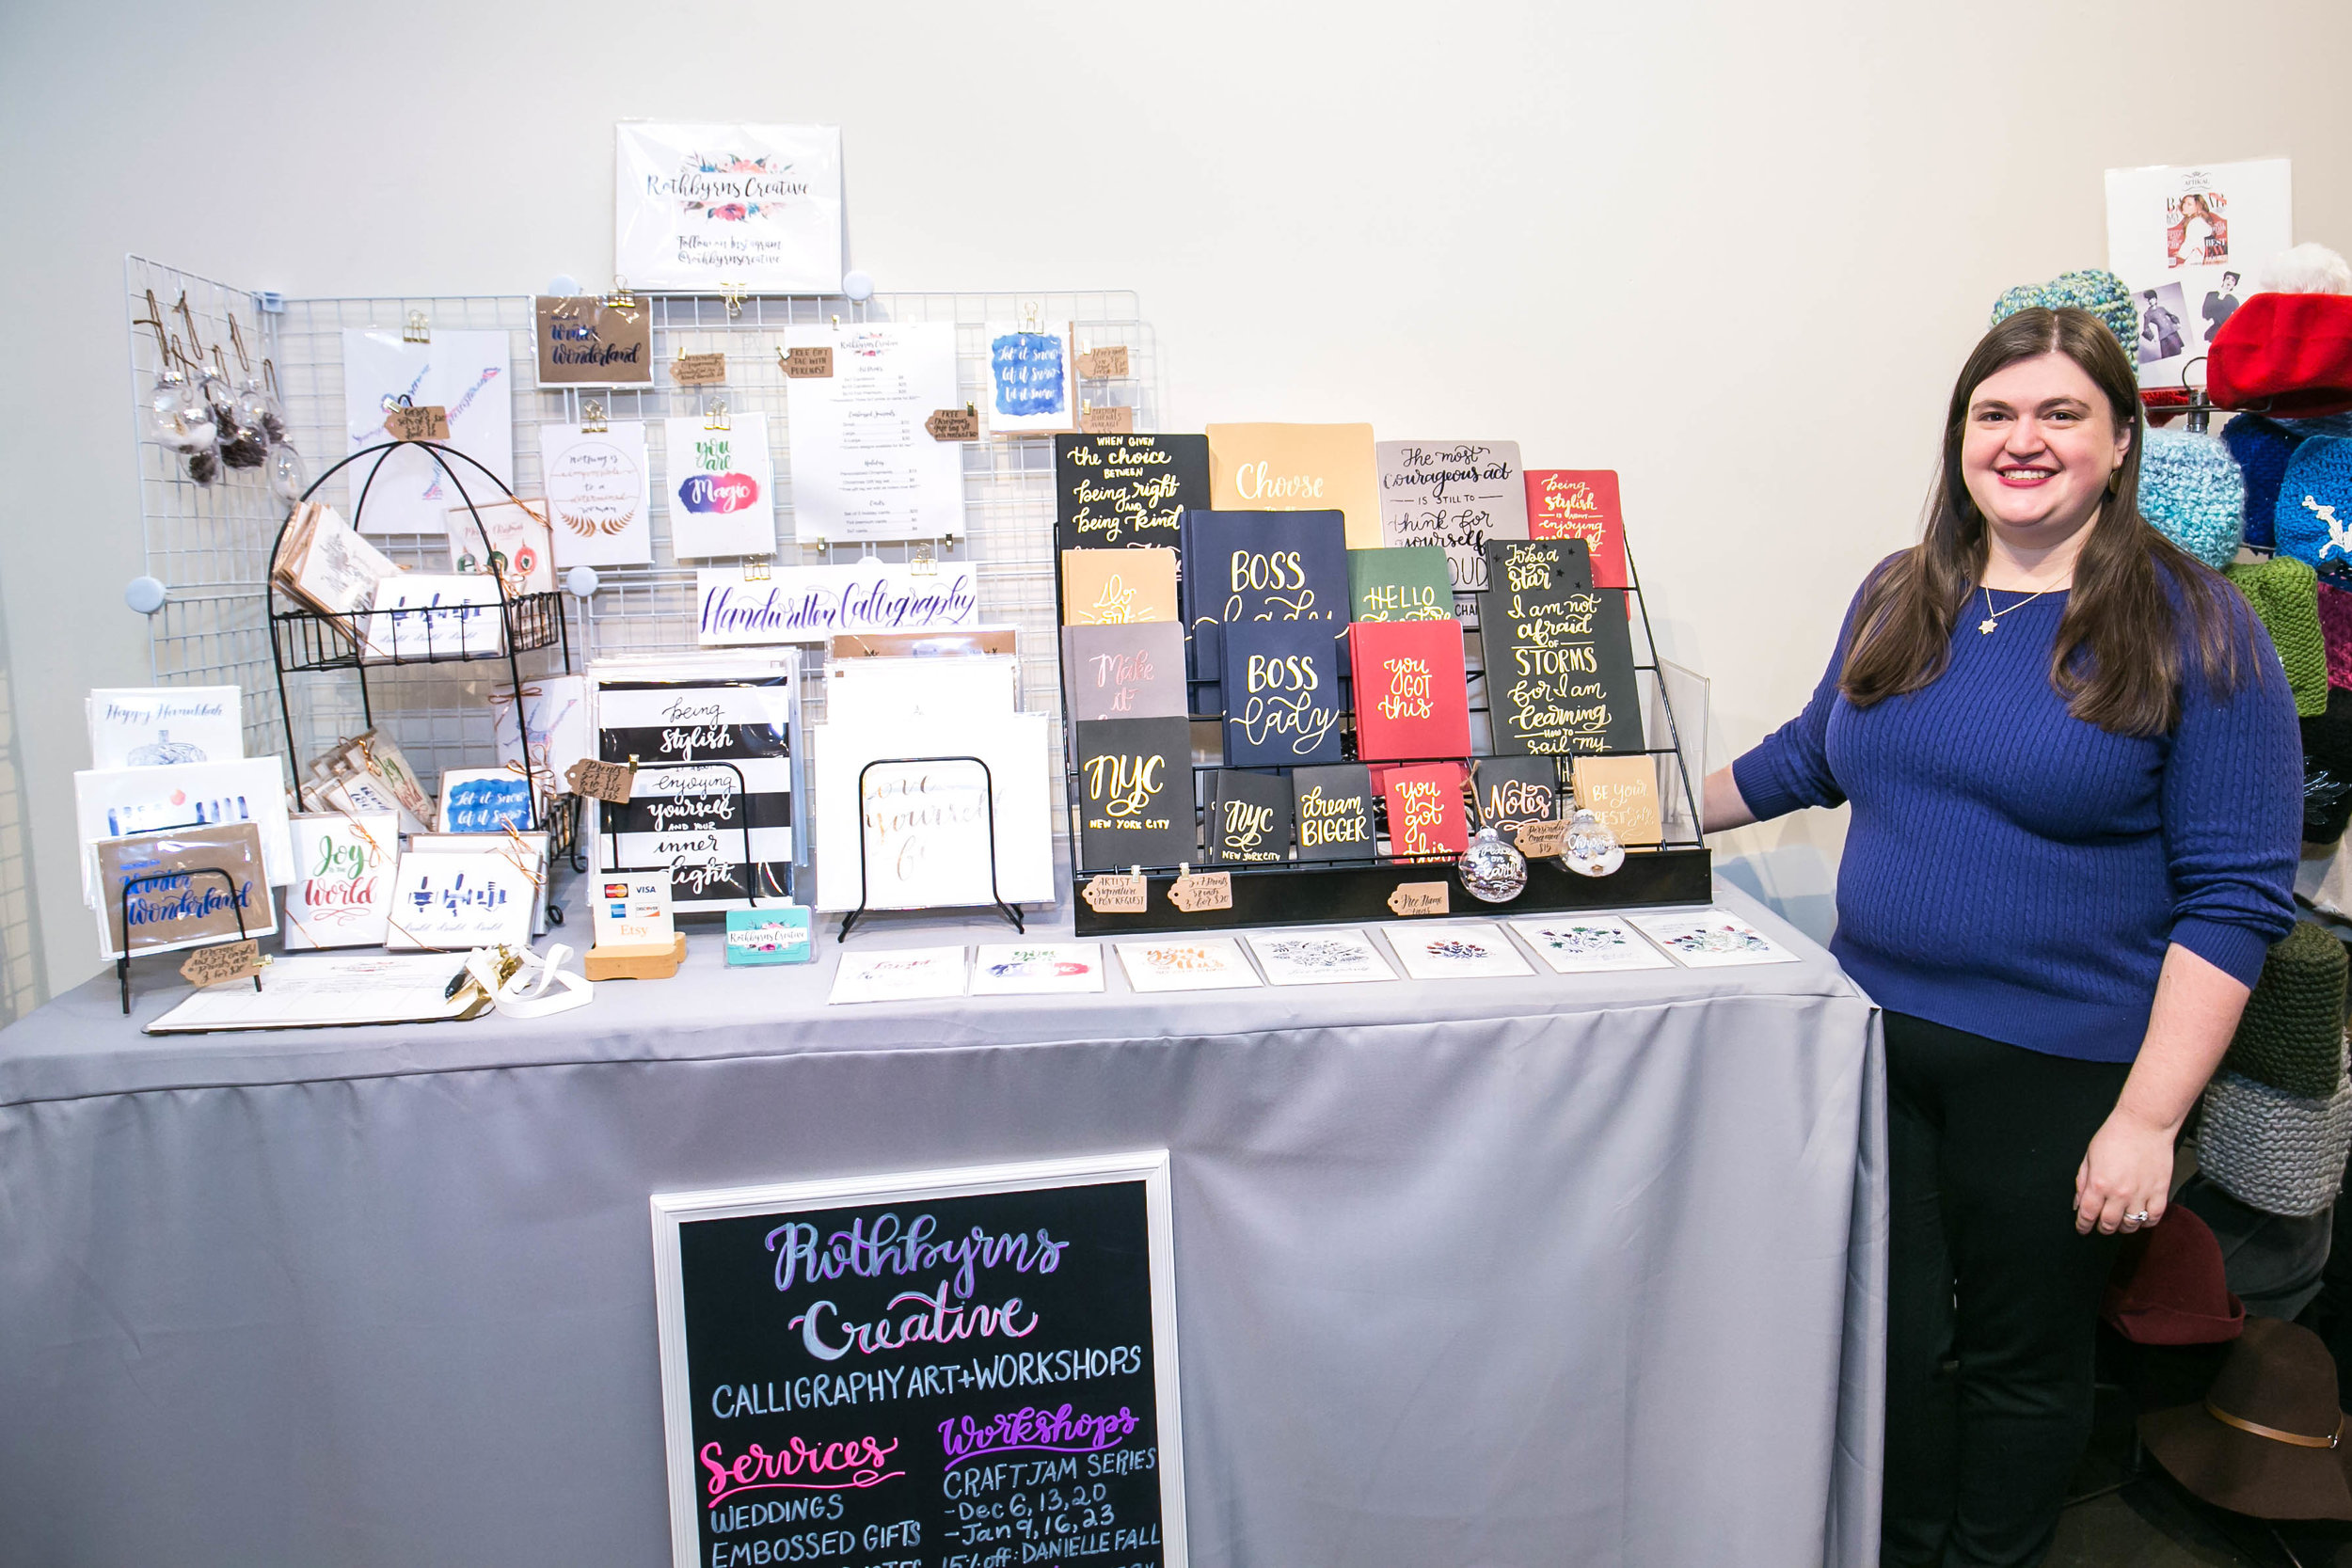 Pop Up Shop - I've participated in pop up sale events with Chelsea Market, West Elm, the Grand Bazaar, the New York Handmade Collective, and the Hudson Co-Op. I'd love to offer my one-of-a-kind handwritten journals and calligraphy prints to your customers!